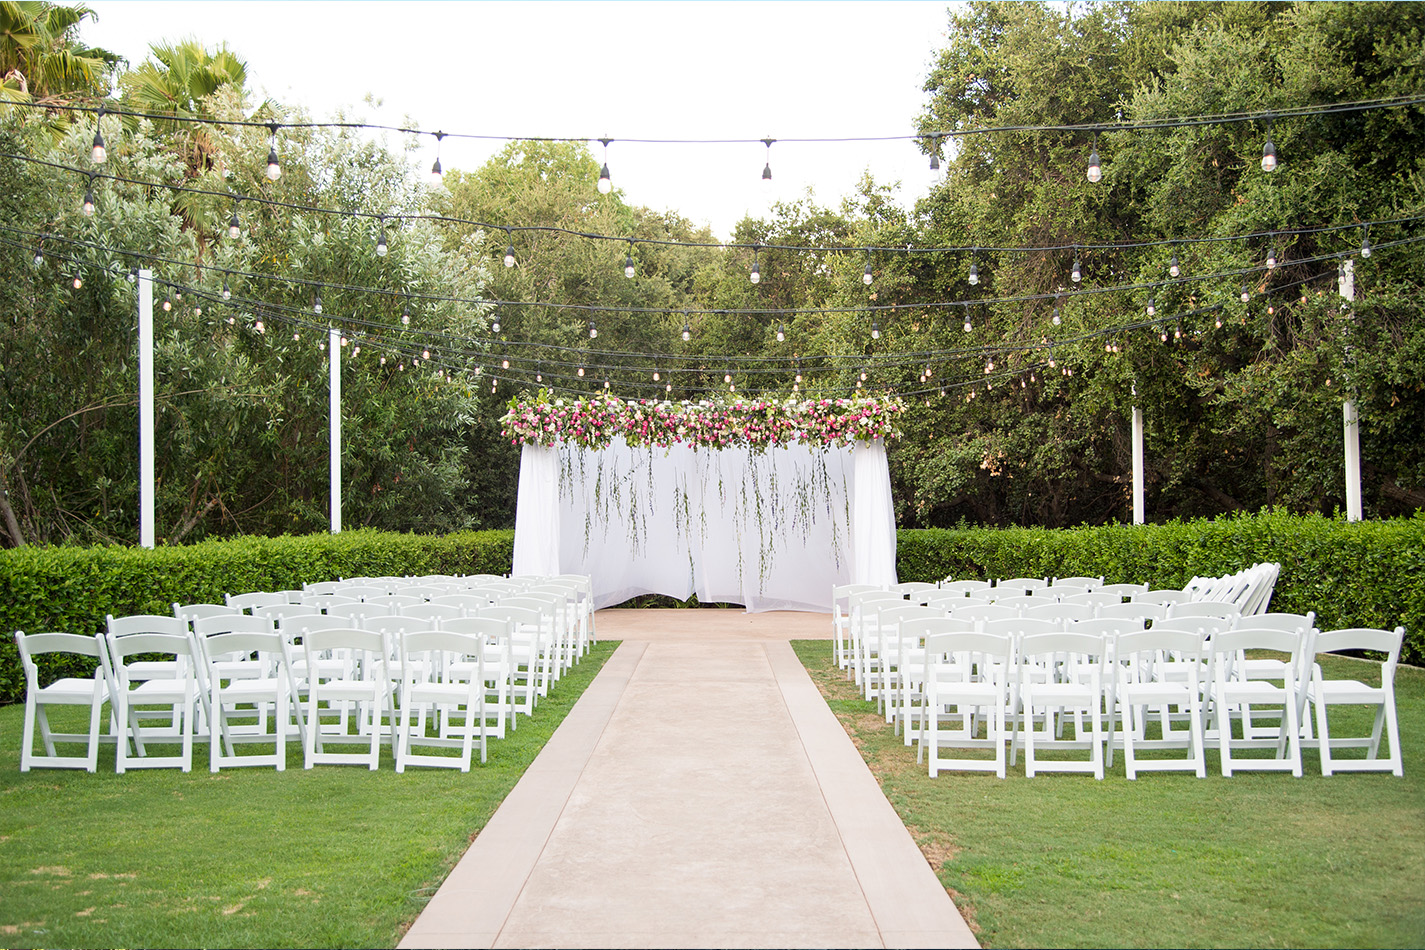 Ceremony site - Sierra La Verne - La Verne, California - Claremont Area - Los Angeles County - Wedgewood Weddings